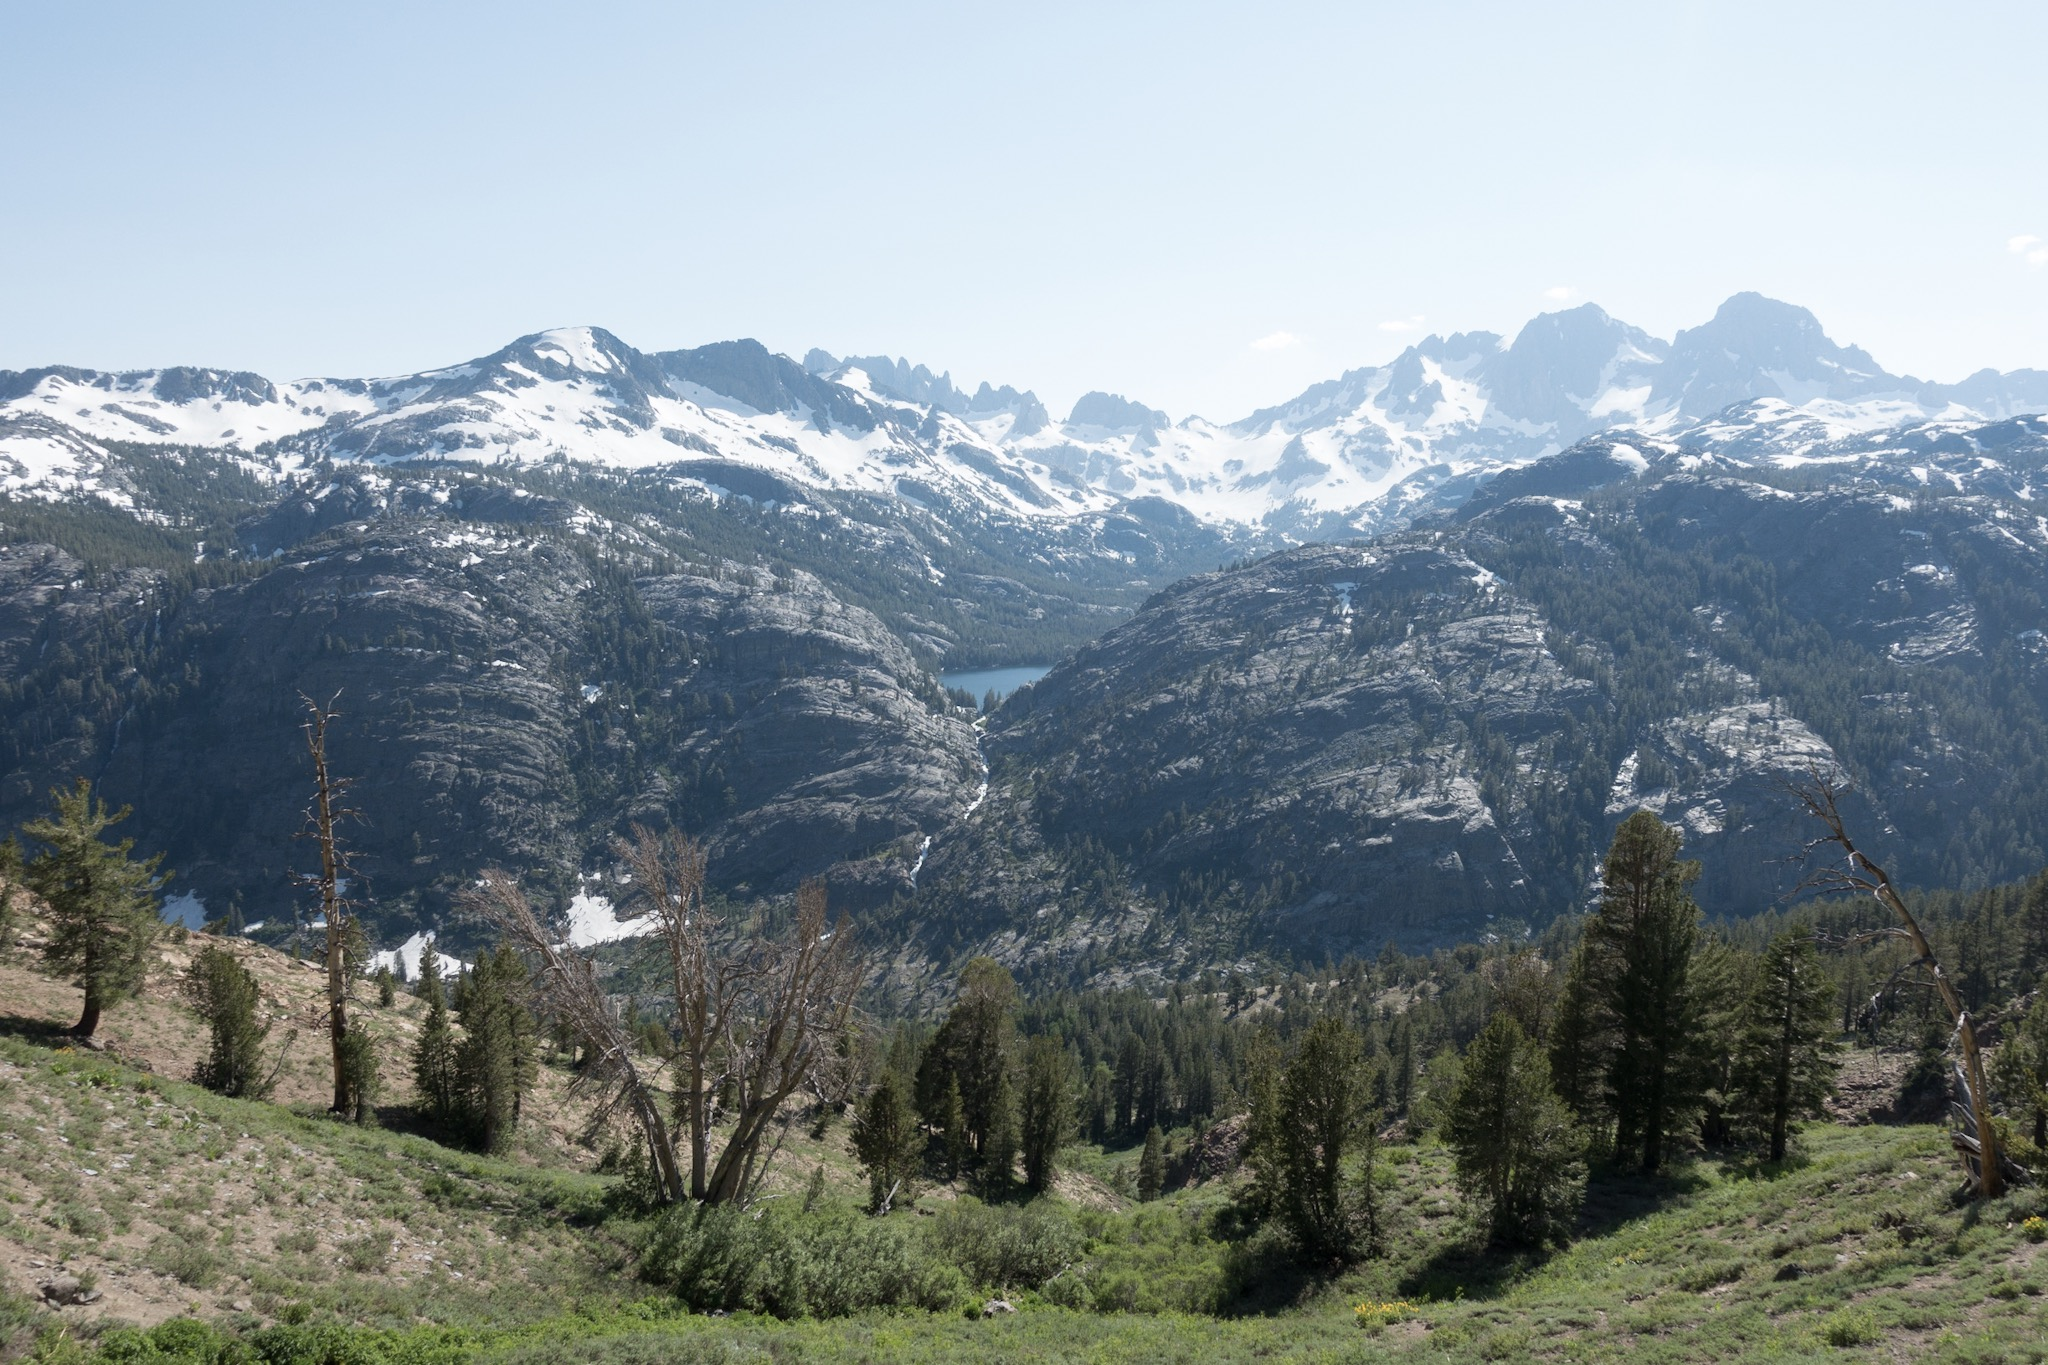 Looking over the valley to where JMT goes.